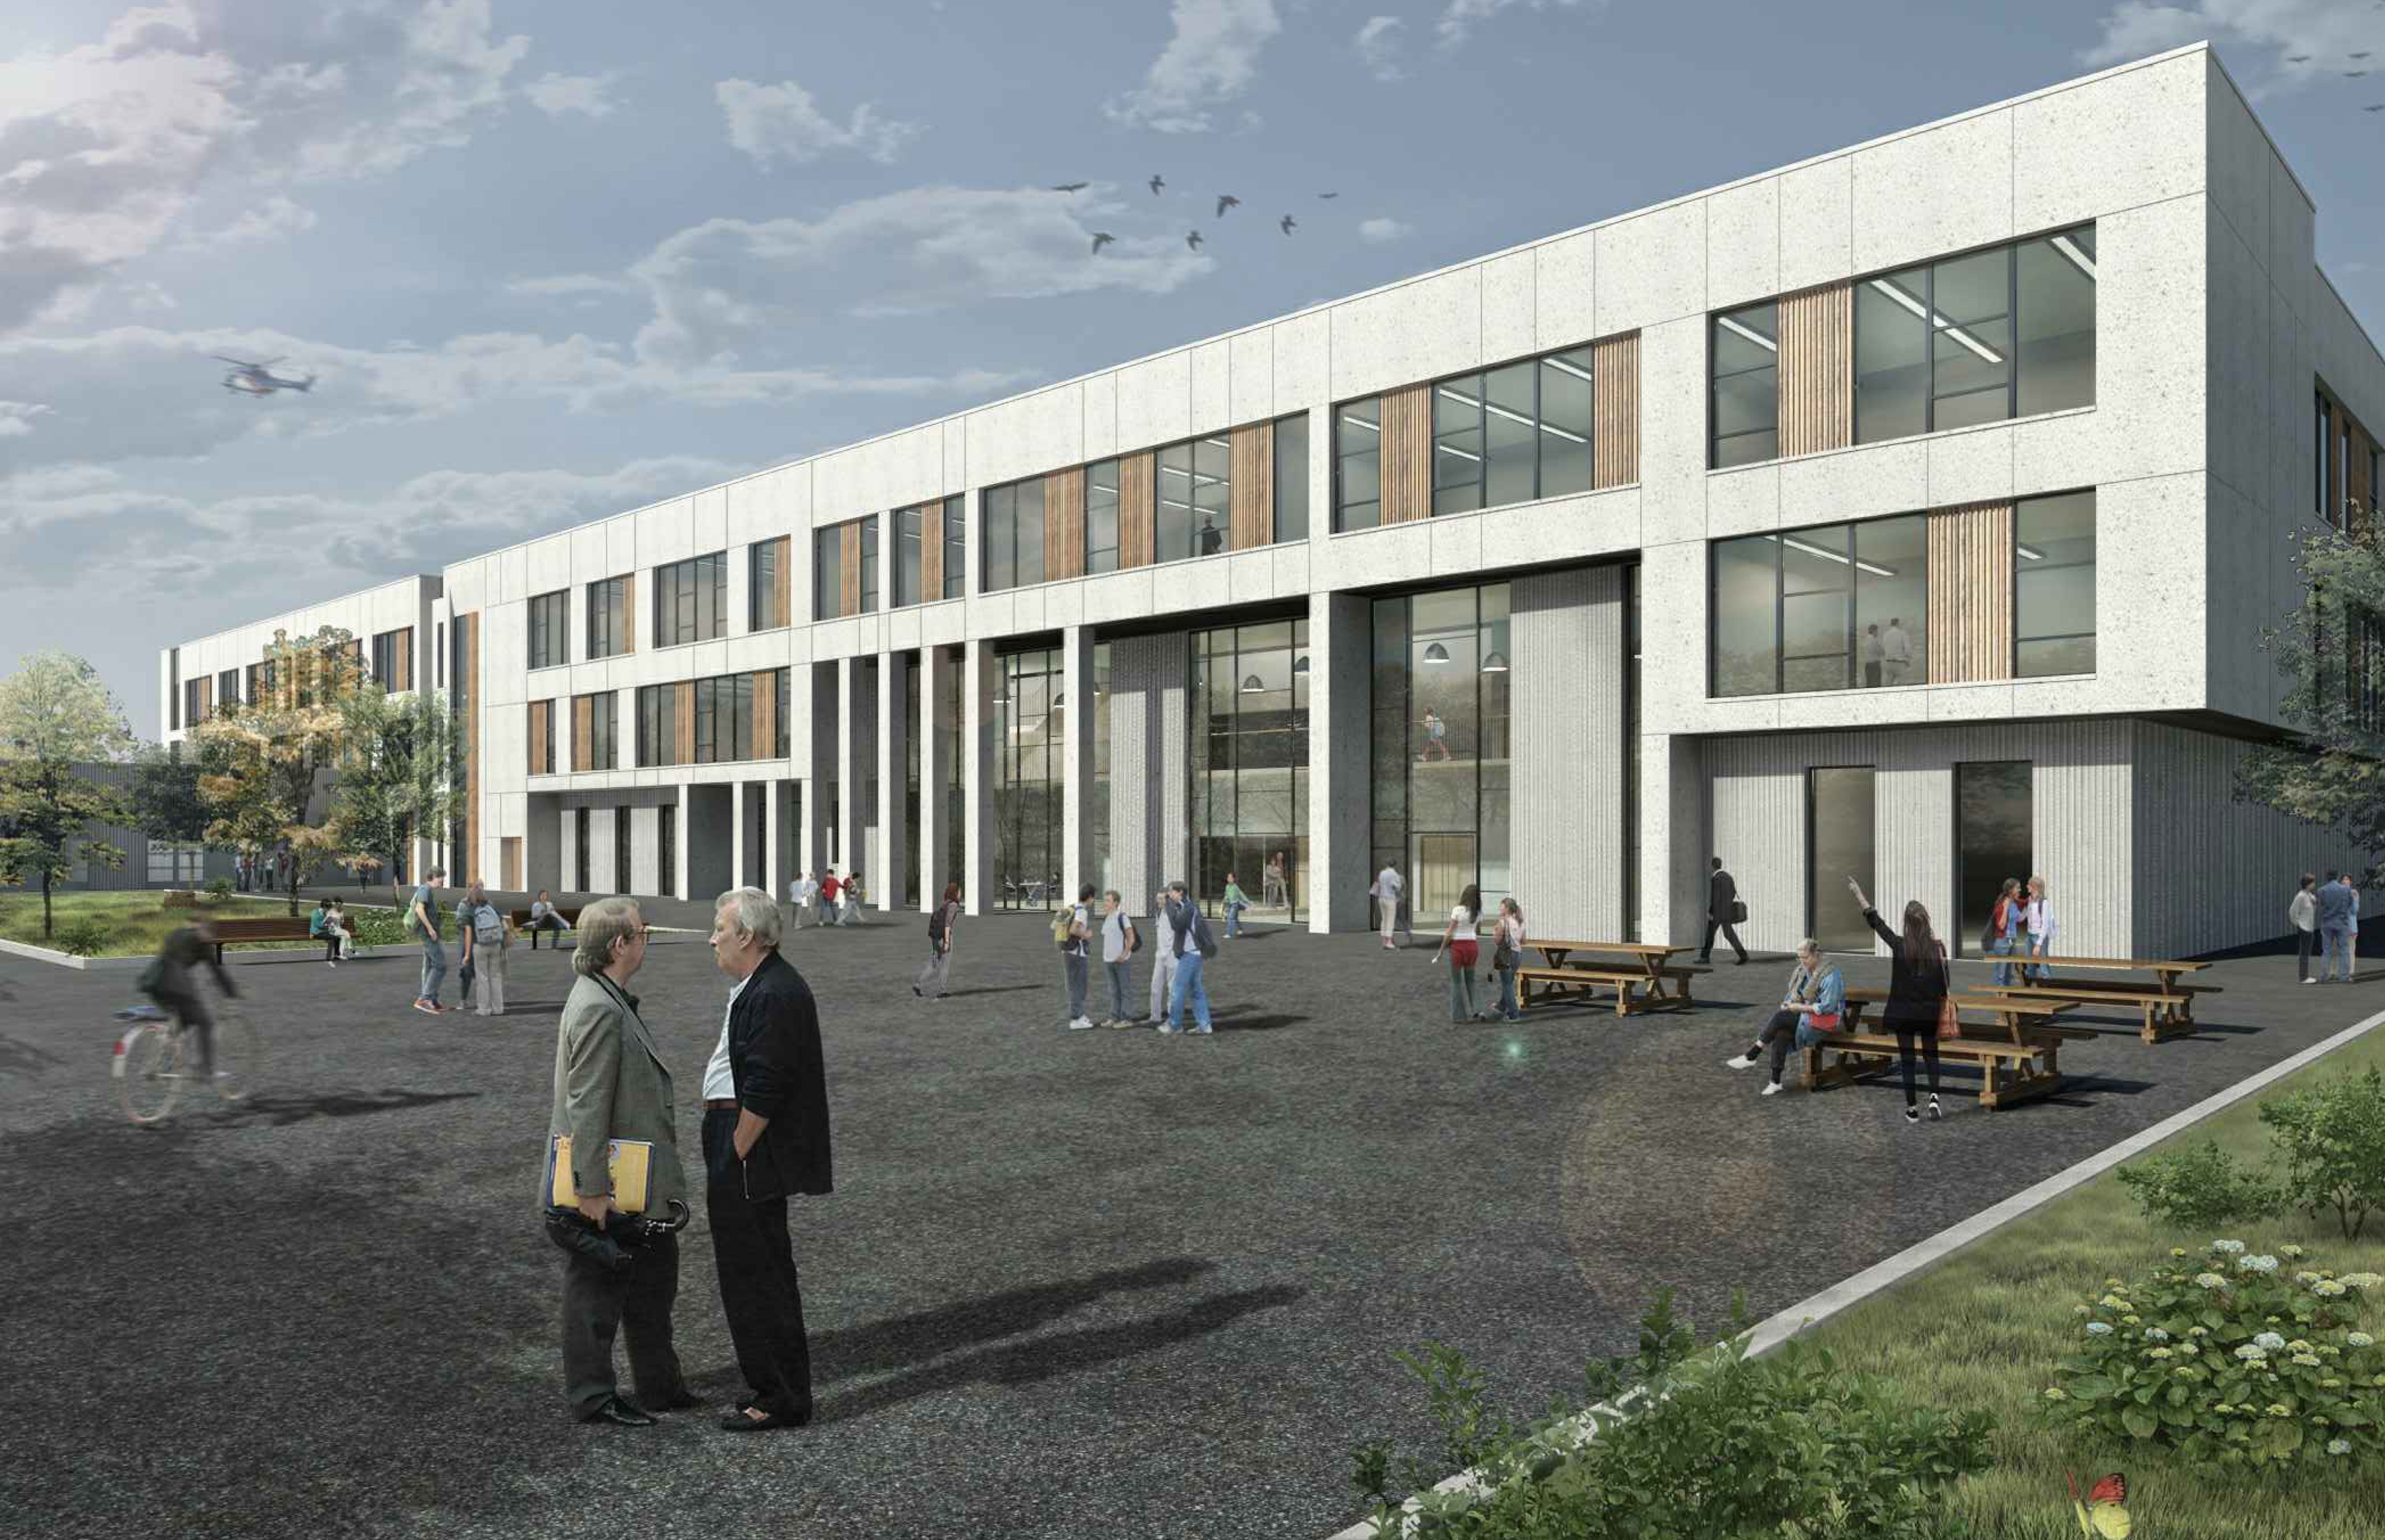 plan:  An artist's impression of the new school at Calder Park.